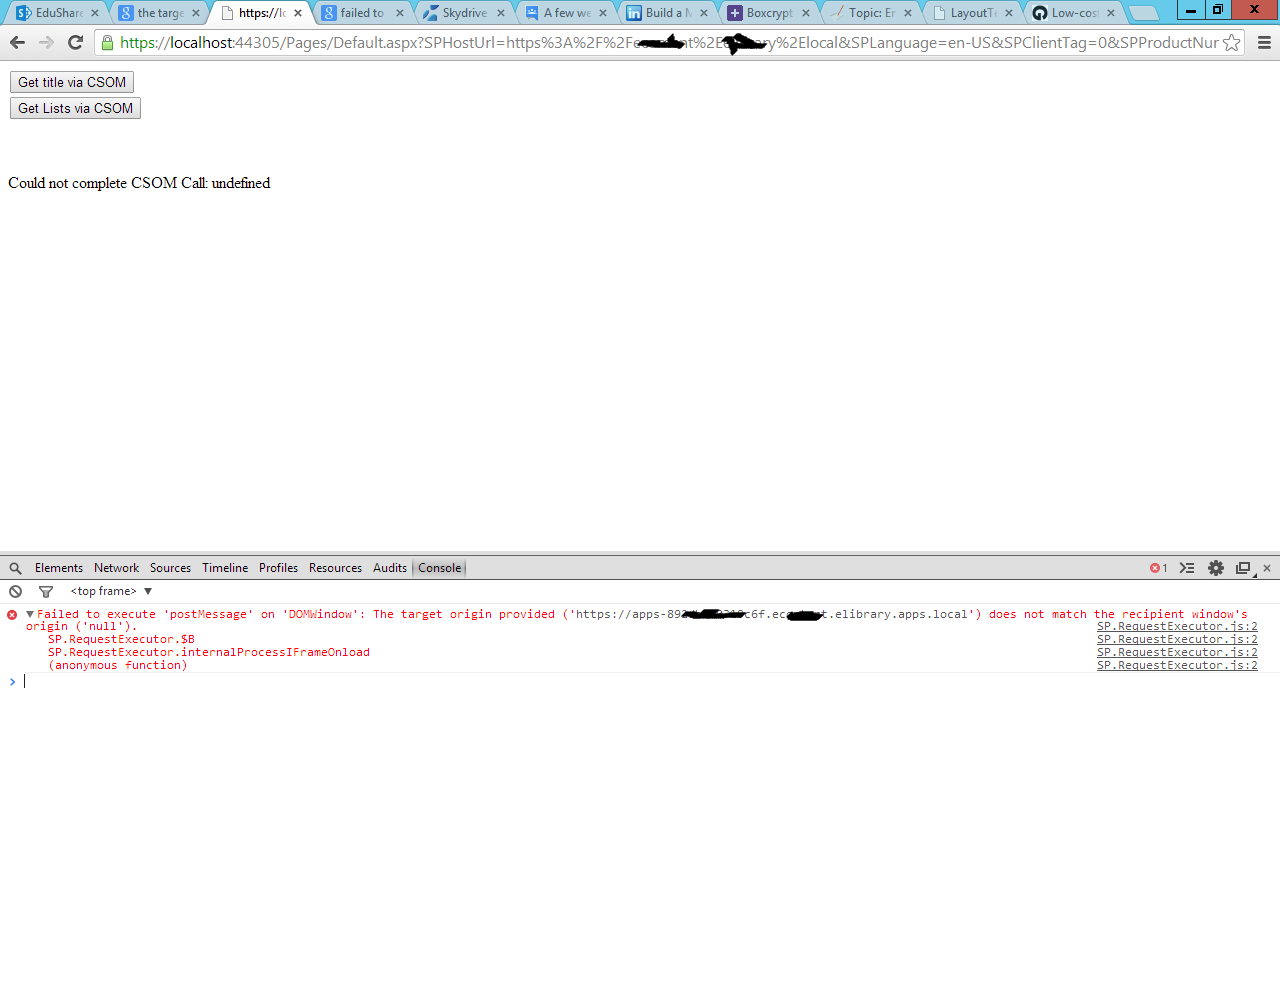 Failed to execute 'postMessage' on 'DOMWindow':